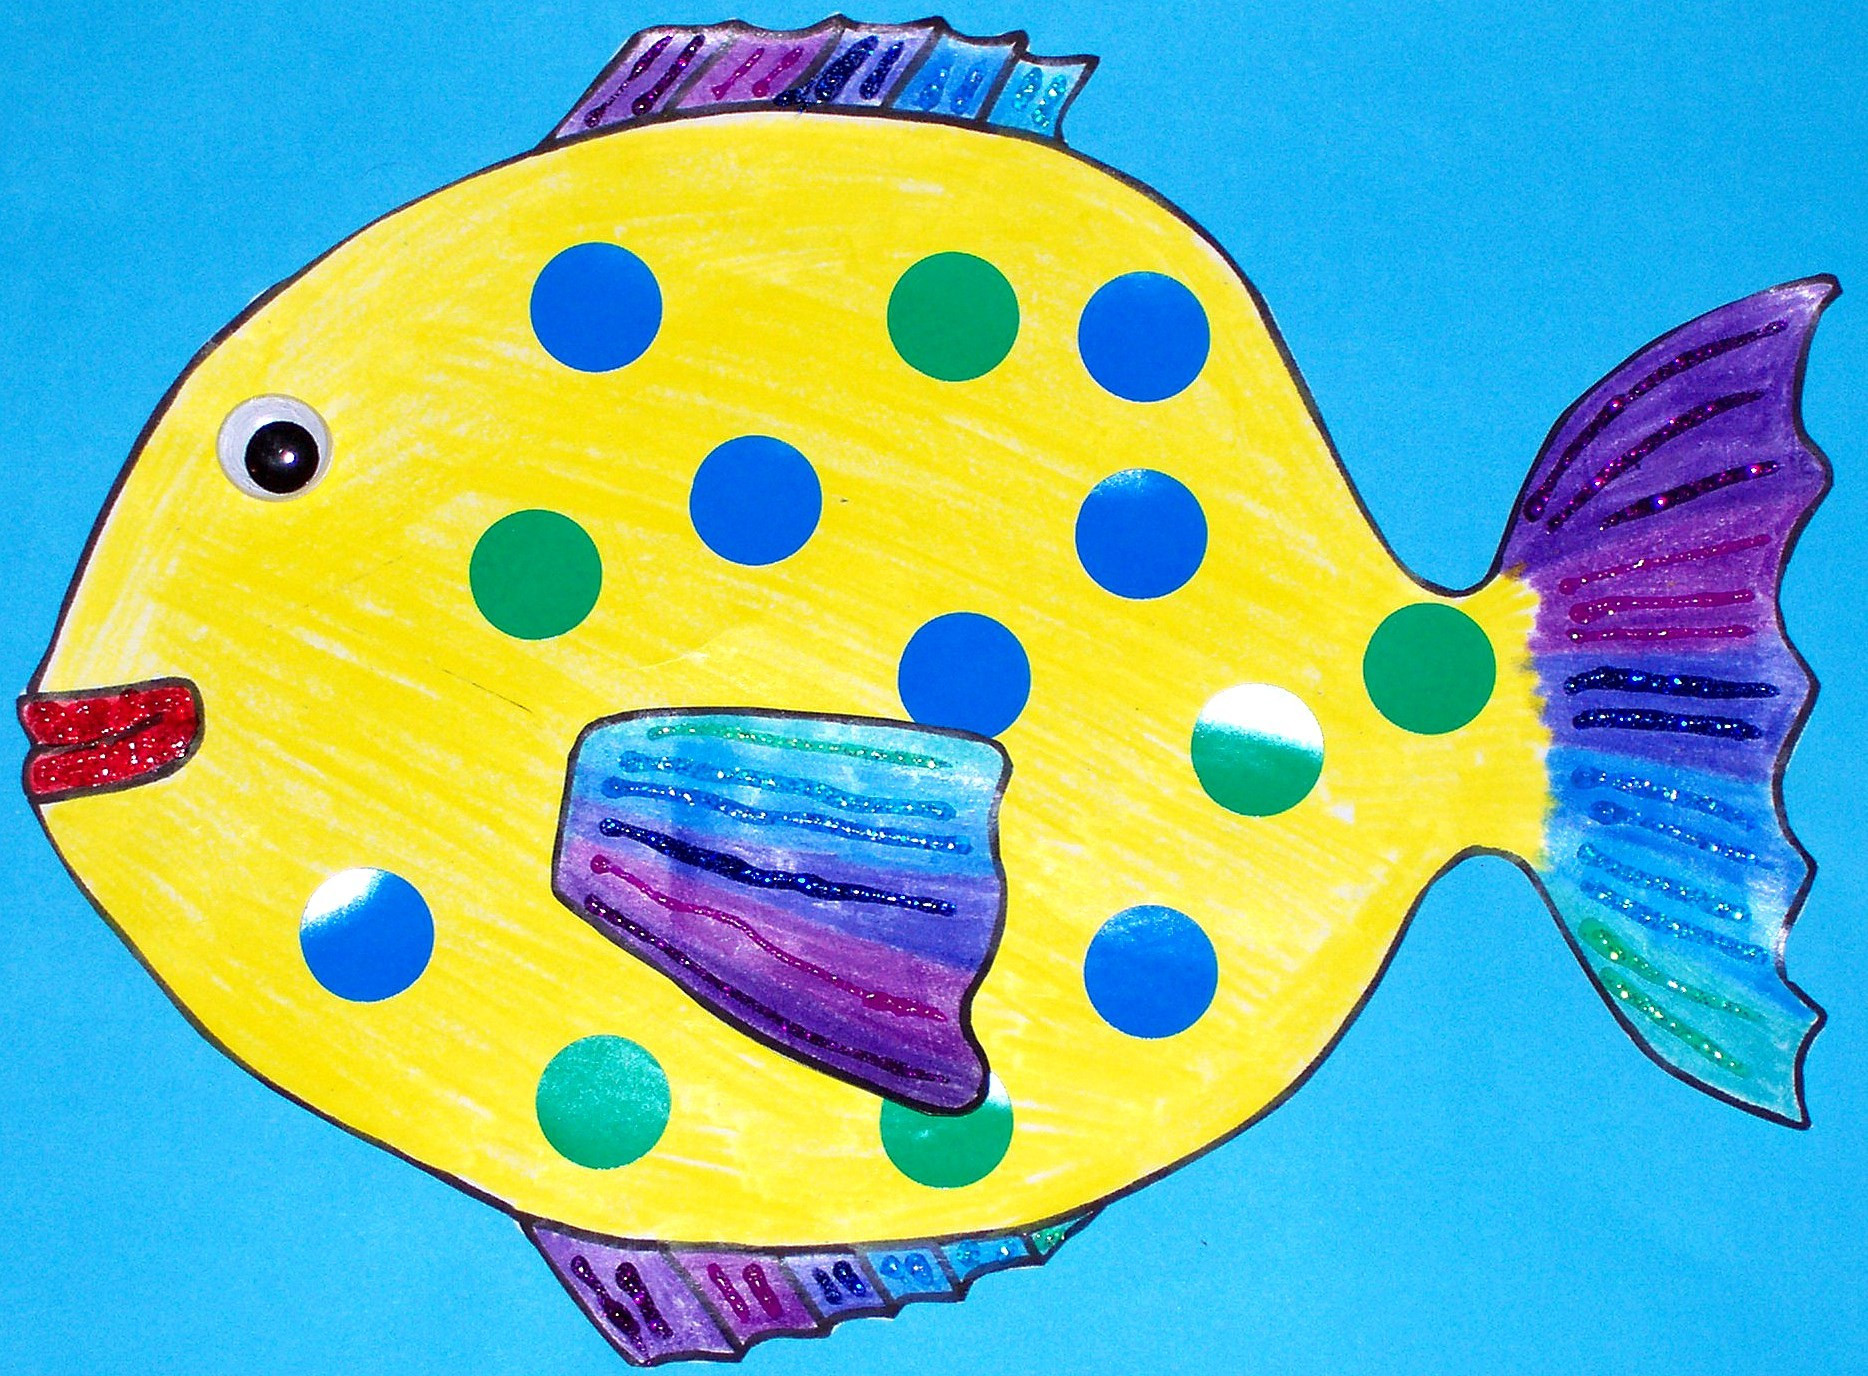 Best ideas about Art Crafts For Kids . Save or Pin Crafts For Kids Kids Crafts Ideas Now.